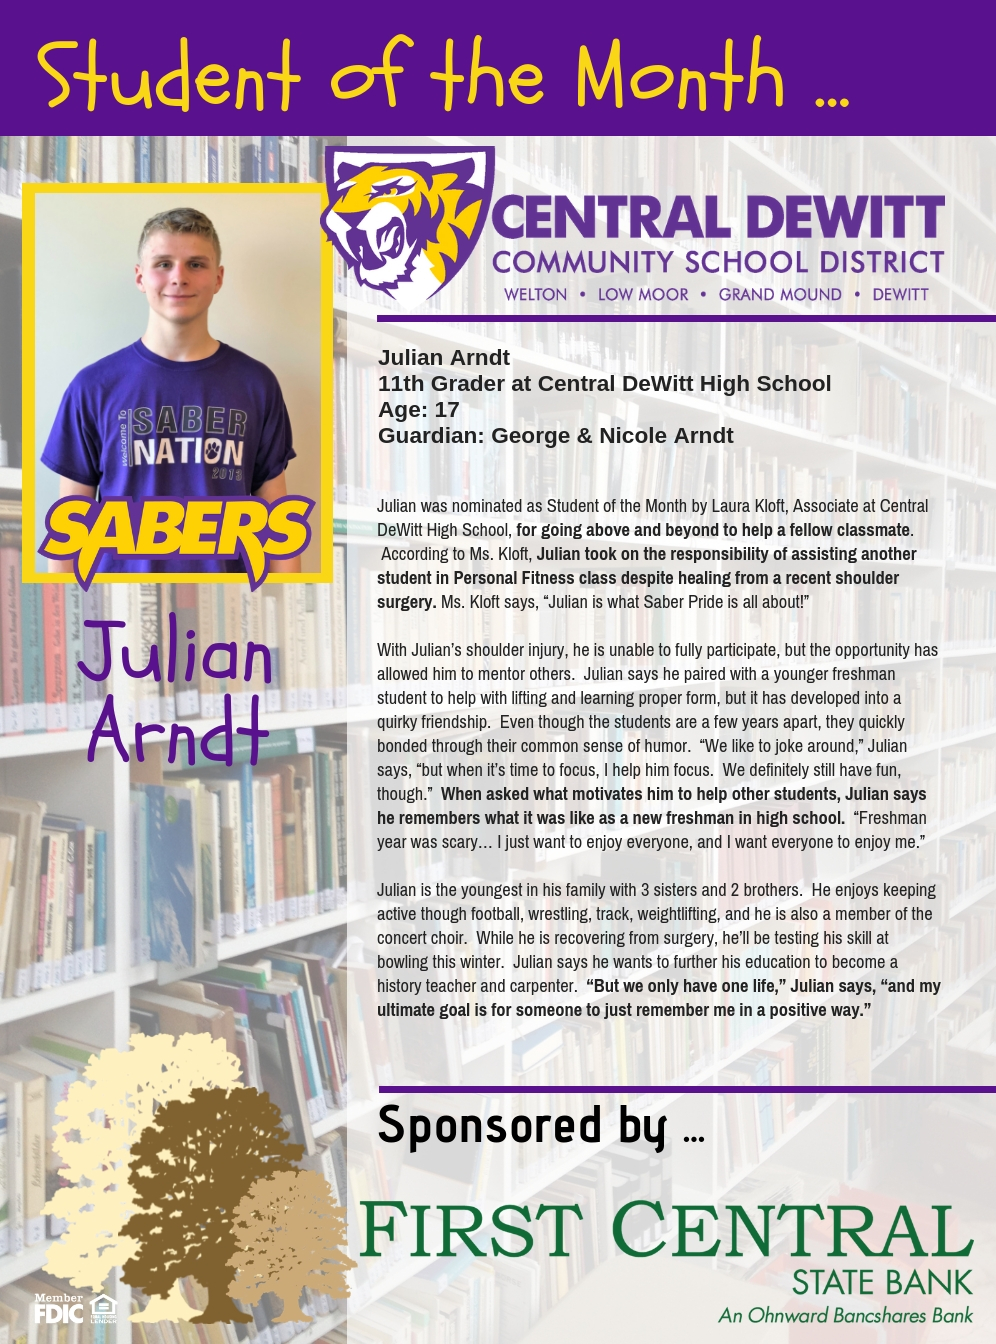 Julian Arndt recognized as Student of the Month